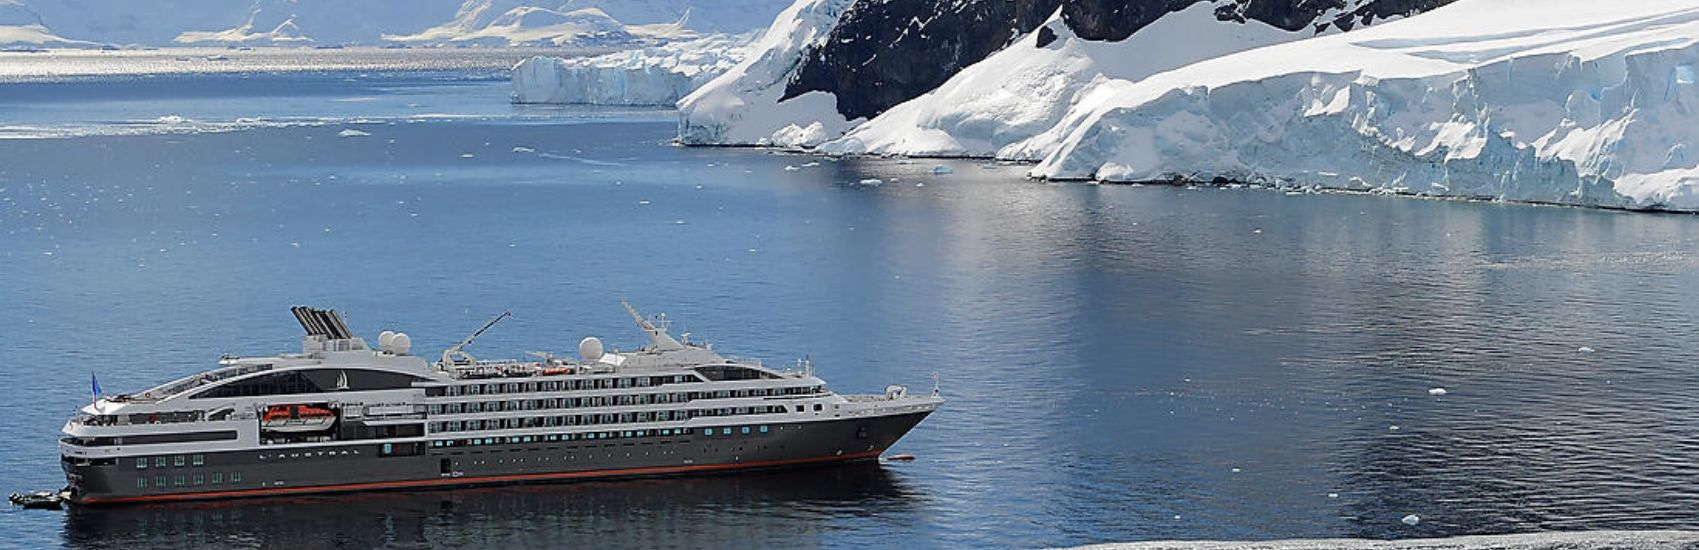 5 Reasons to Visit Antarctica 0